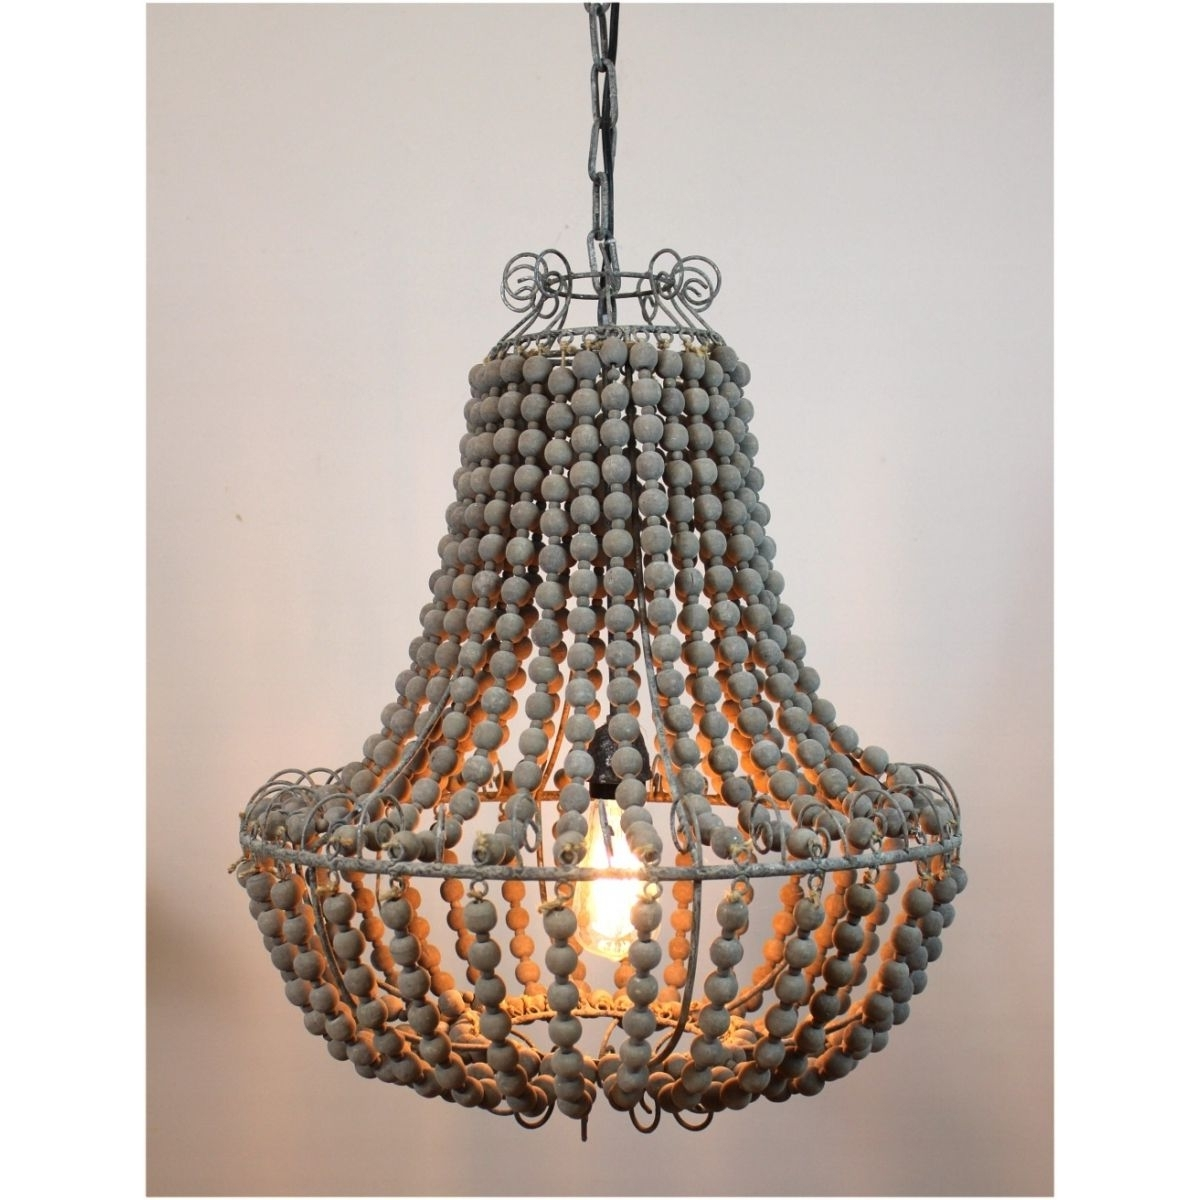 Latest Aged Wooden Beaded Big Chandelier Hand Made Lighting Fixture Ceiling Regarding Vintage Style Chandeliers (View 5 of 15)